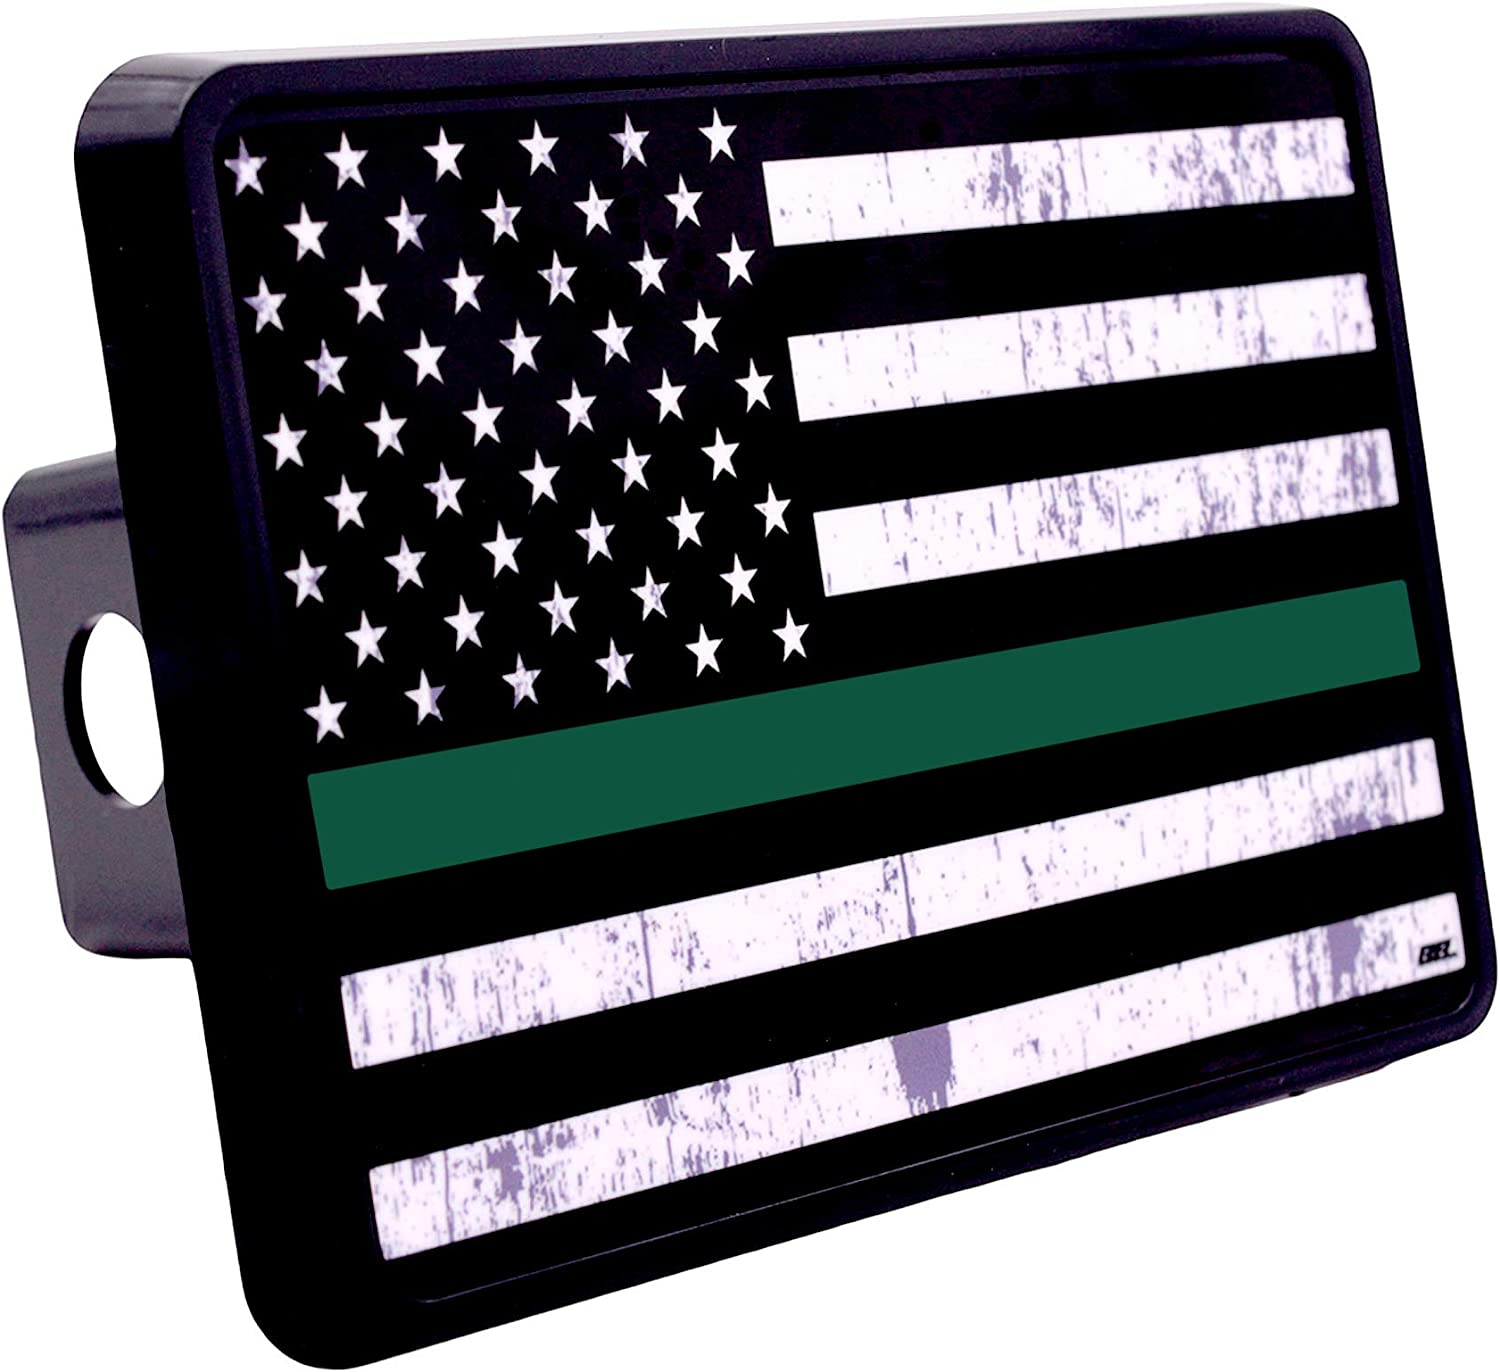 Rogue River Tactical Tattered Thin Green Line Flag Trailer Hitch Cover Plug US Federal Law Enforcement Officers and Military Veterans Border Patrol Game Warden and Park Ranger